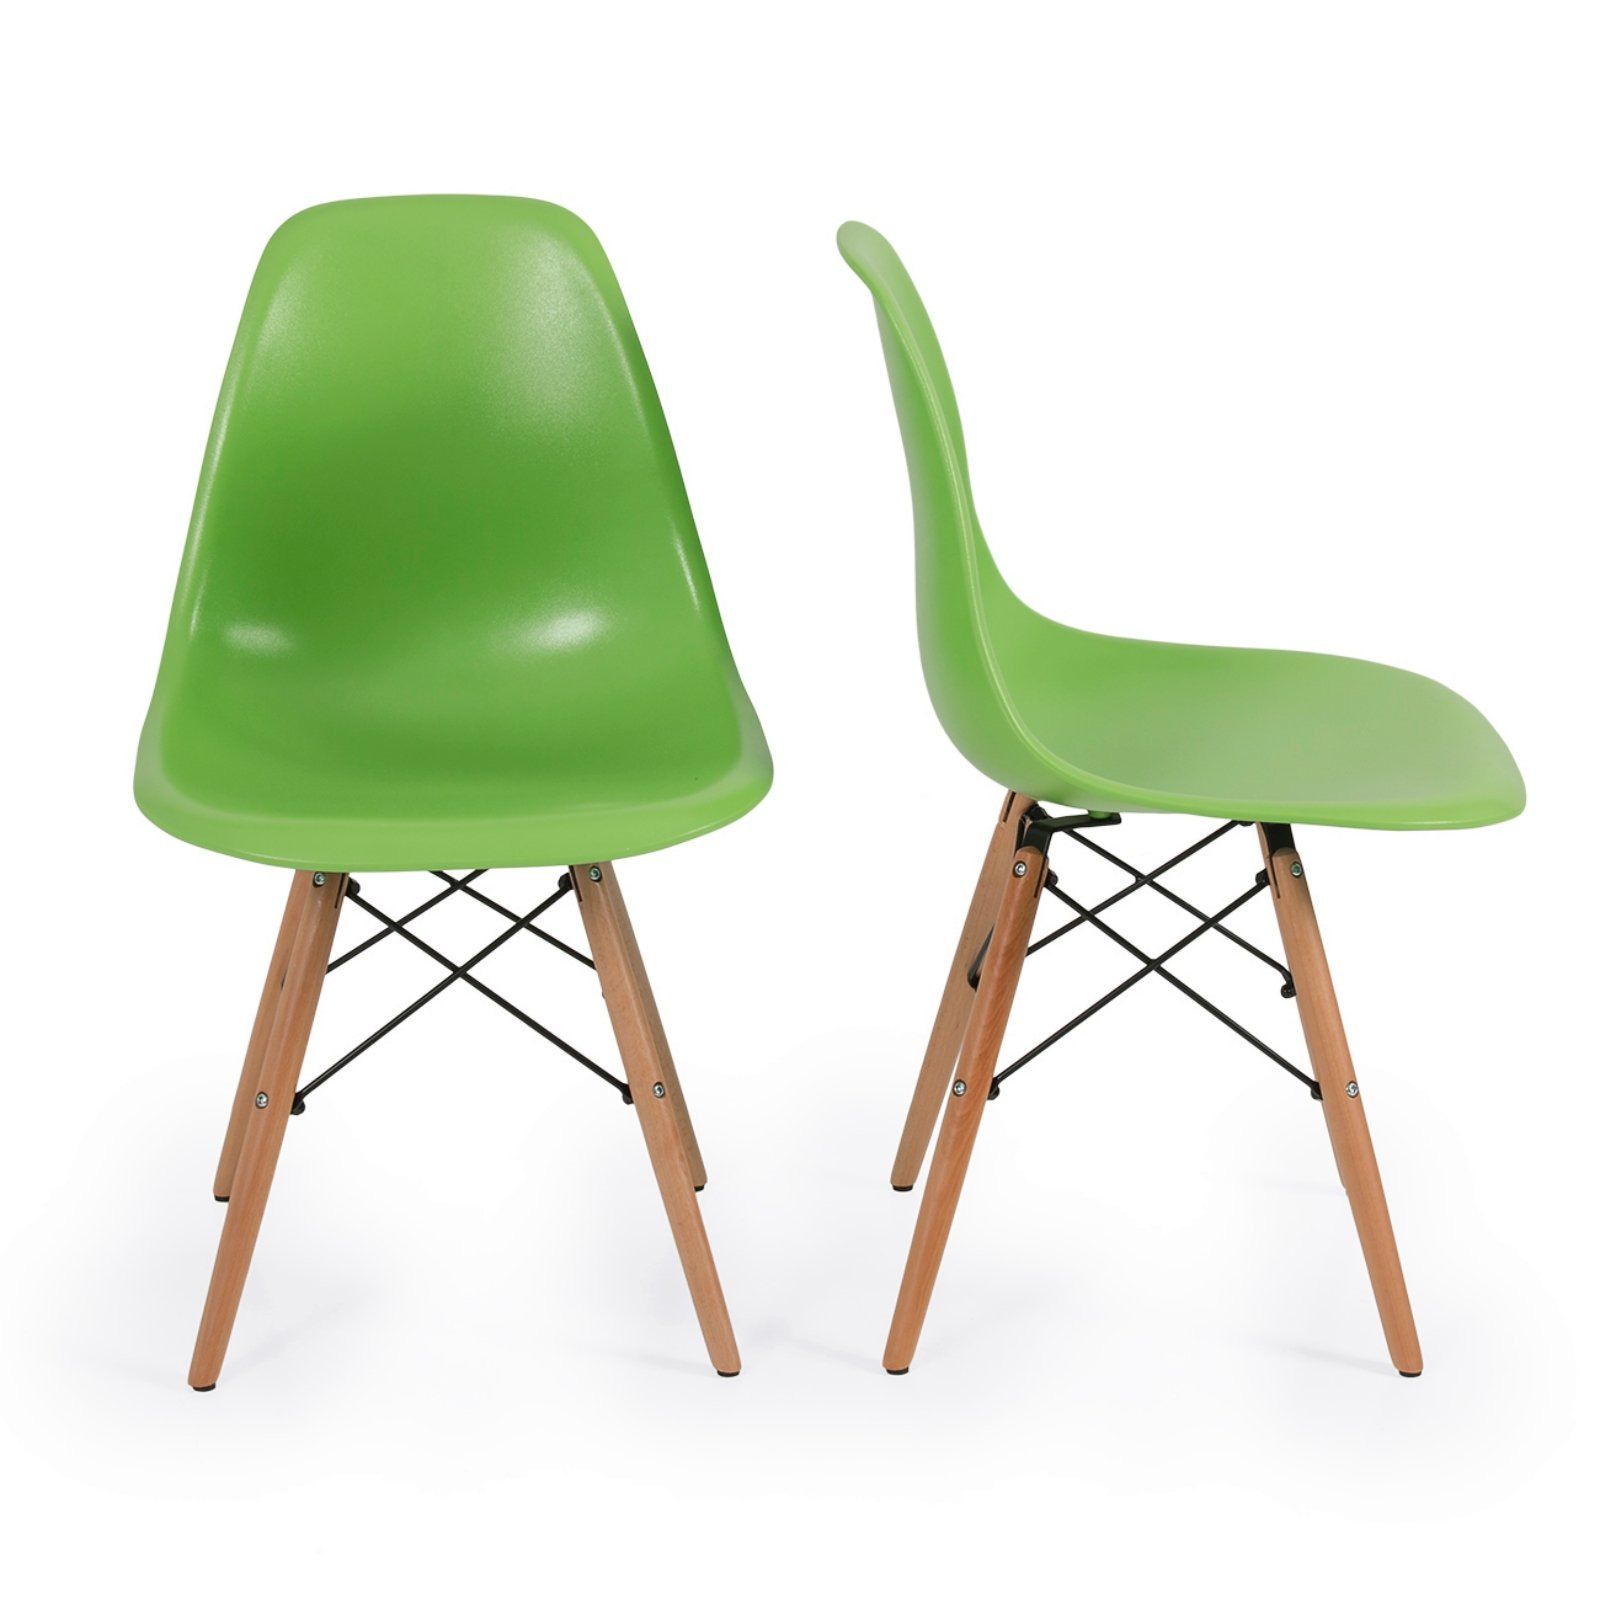 Set of 2 Retro Style Wood Base Mid Century Modern Shell Dining wooden Chair Dowel legs Green #566